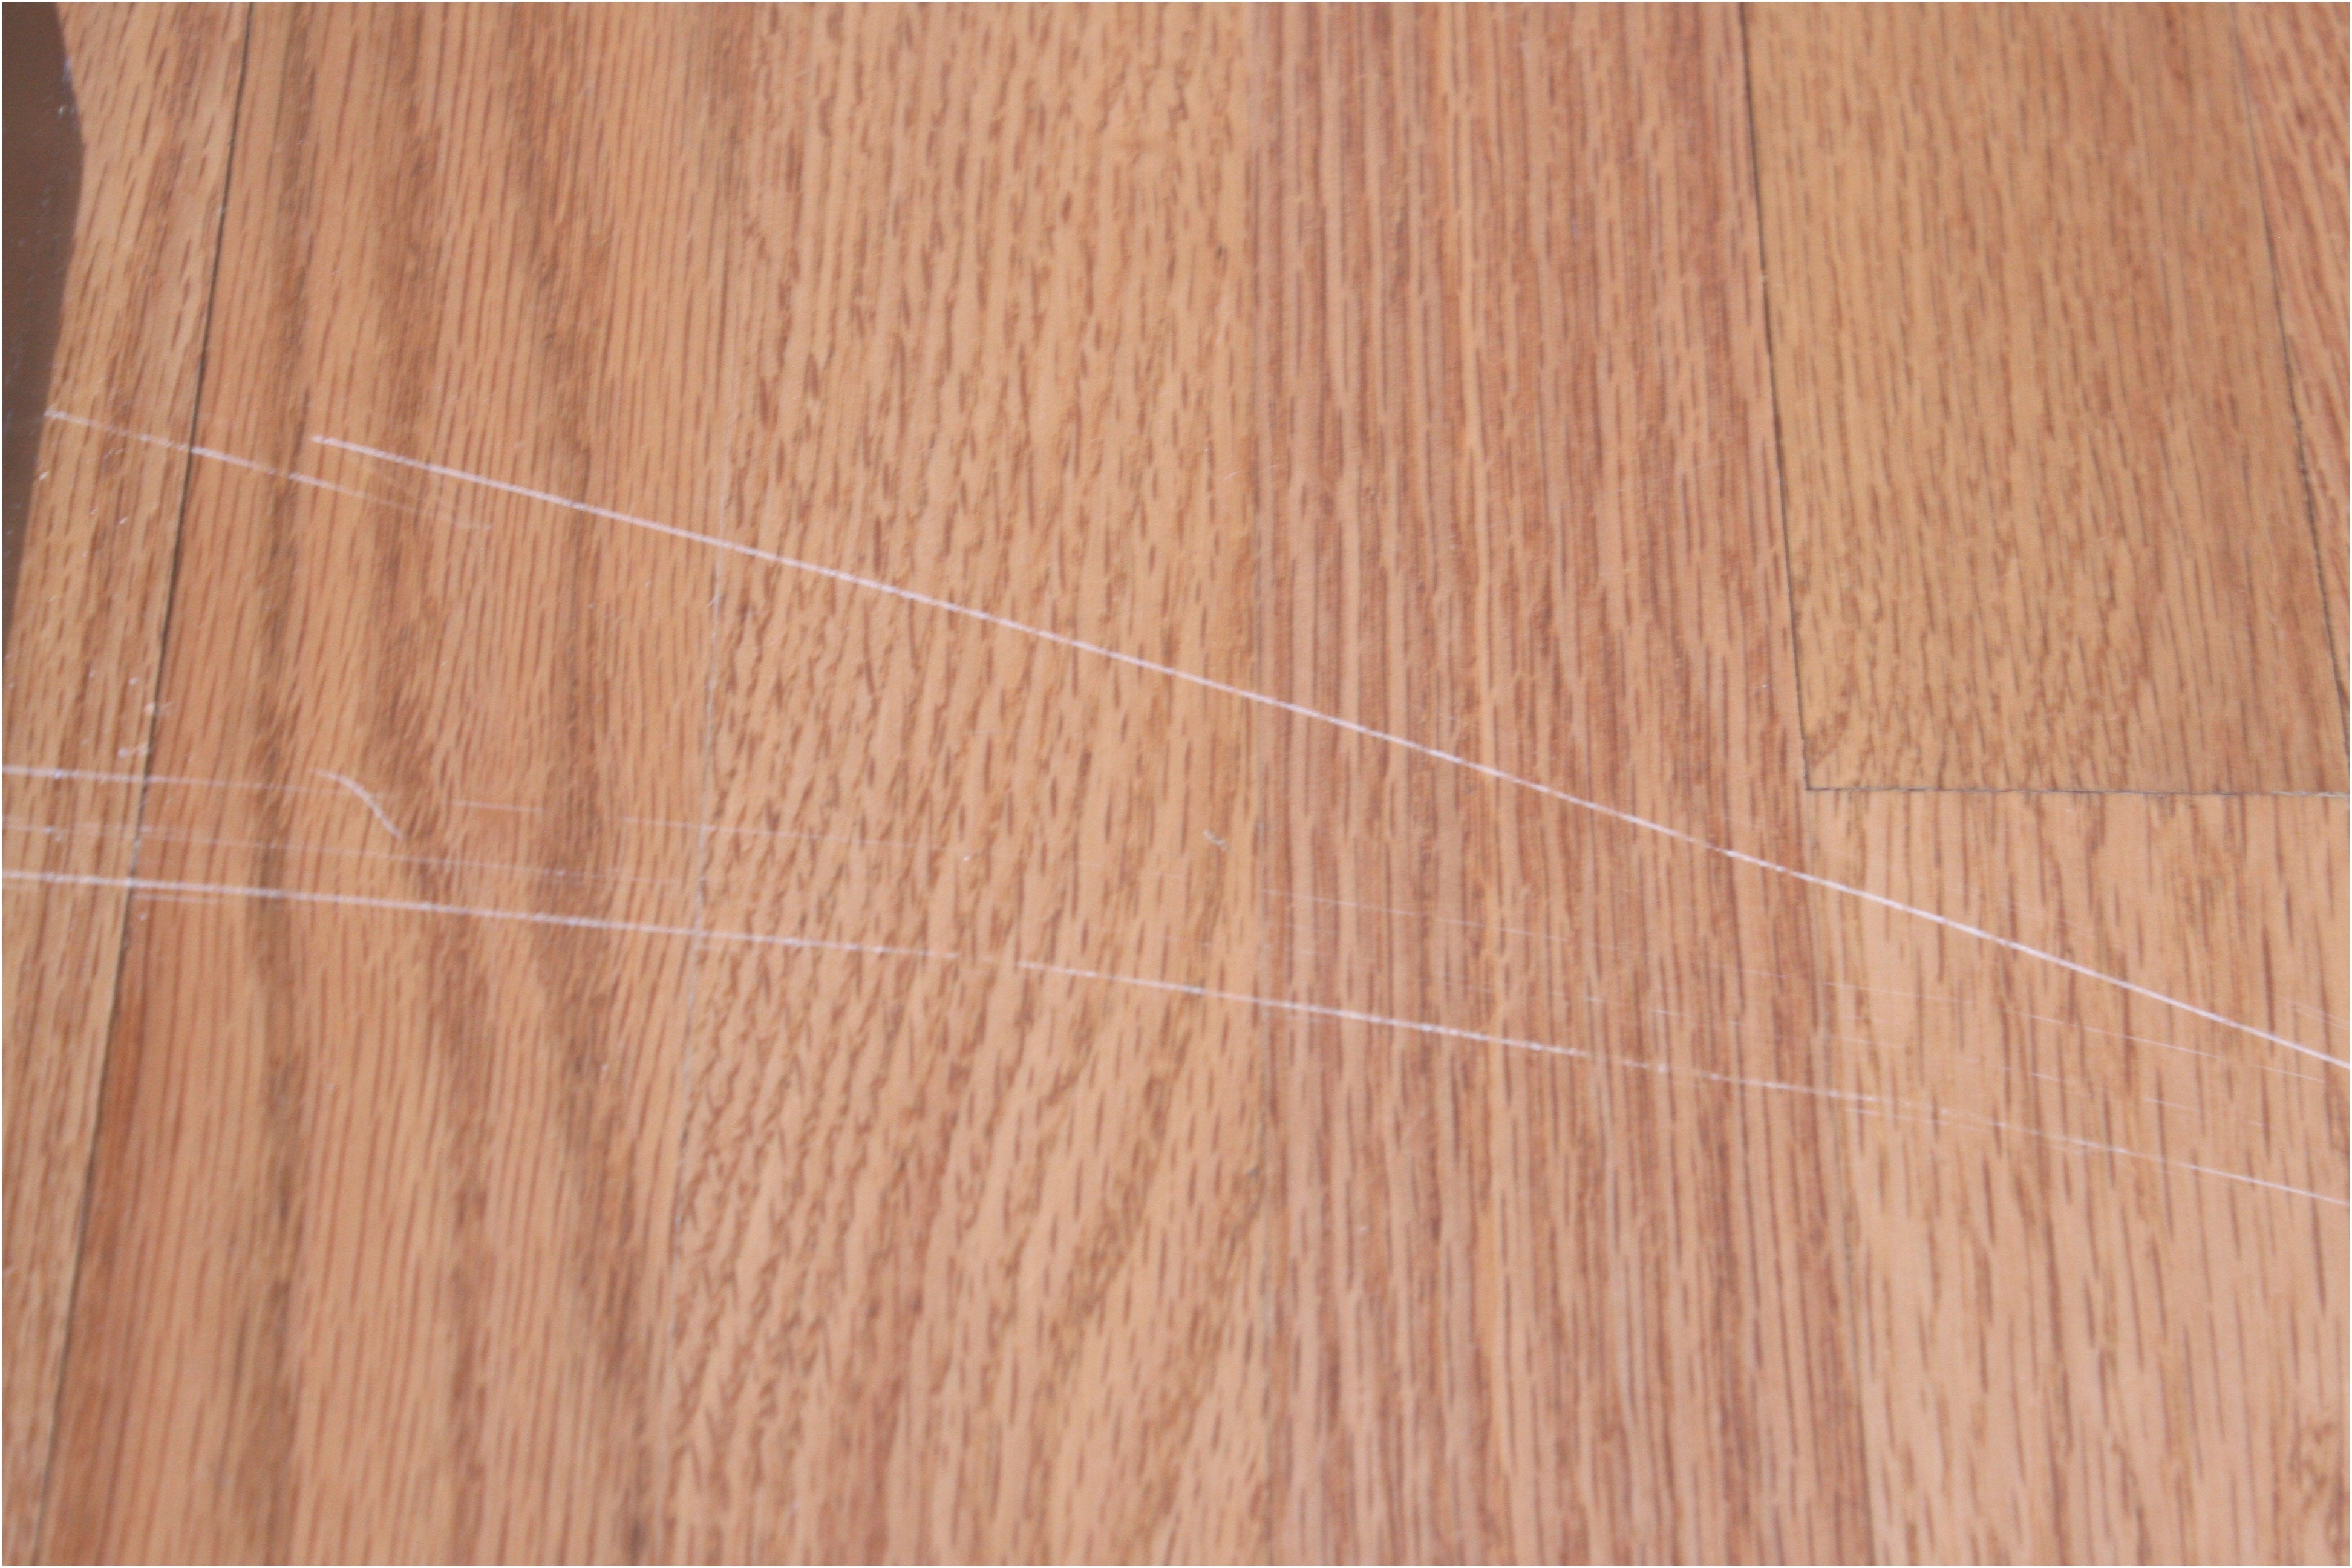 Fixing Deep Scratches On Wood Floors